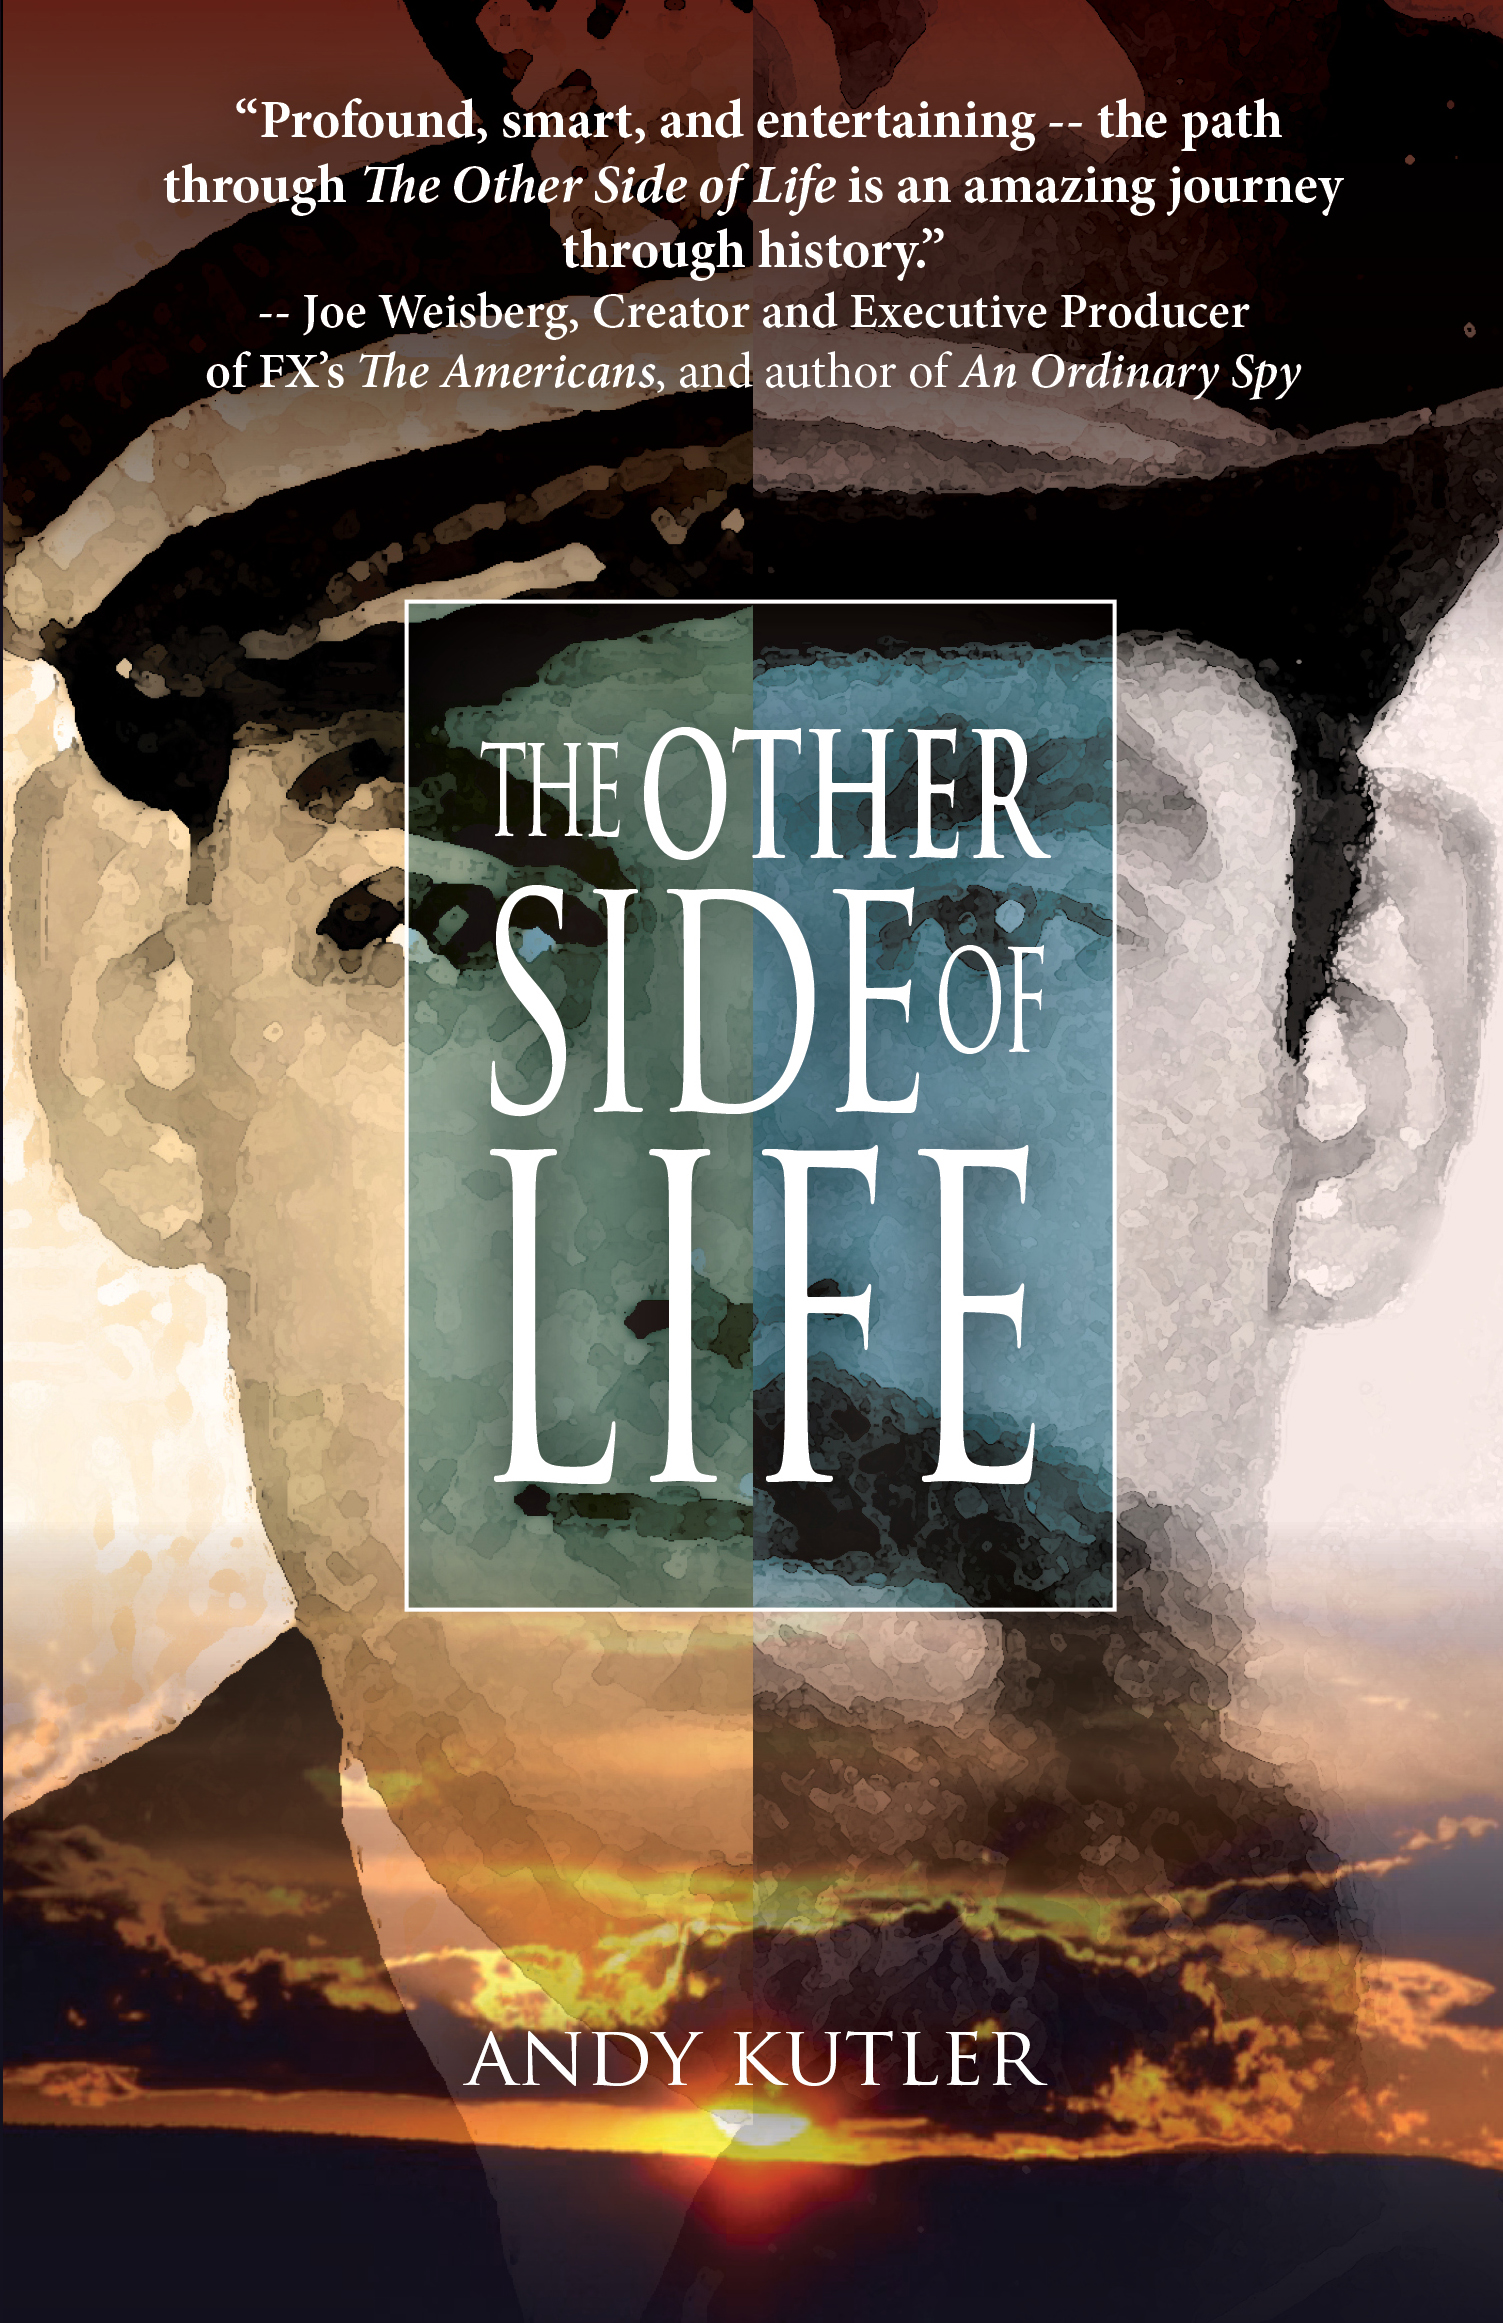 02_The Other Side of Life